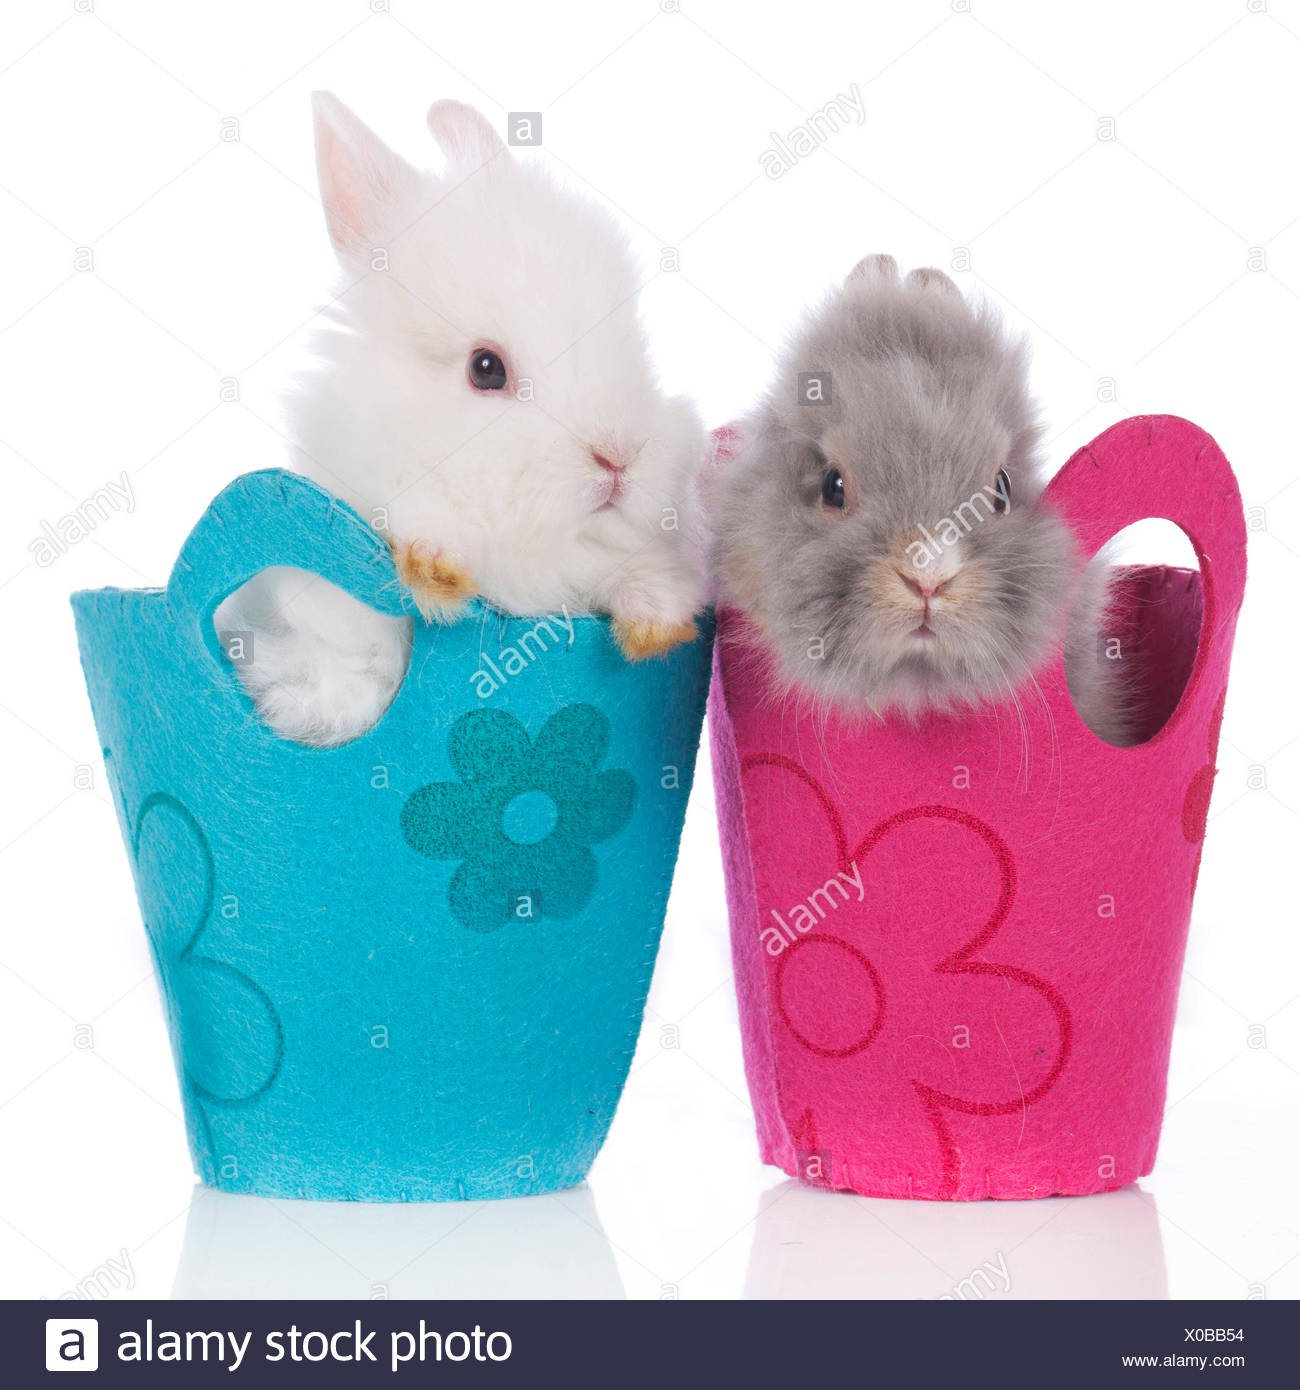 Dwarf Rabbit, Lionhead Rabbit Two individuals red and blue bags Studio picture against white background - Stock Image